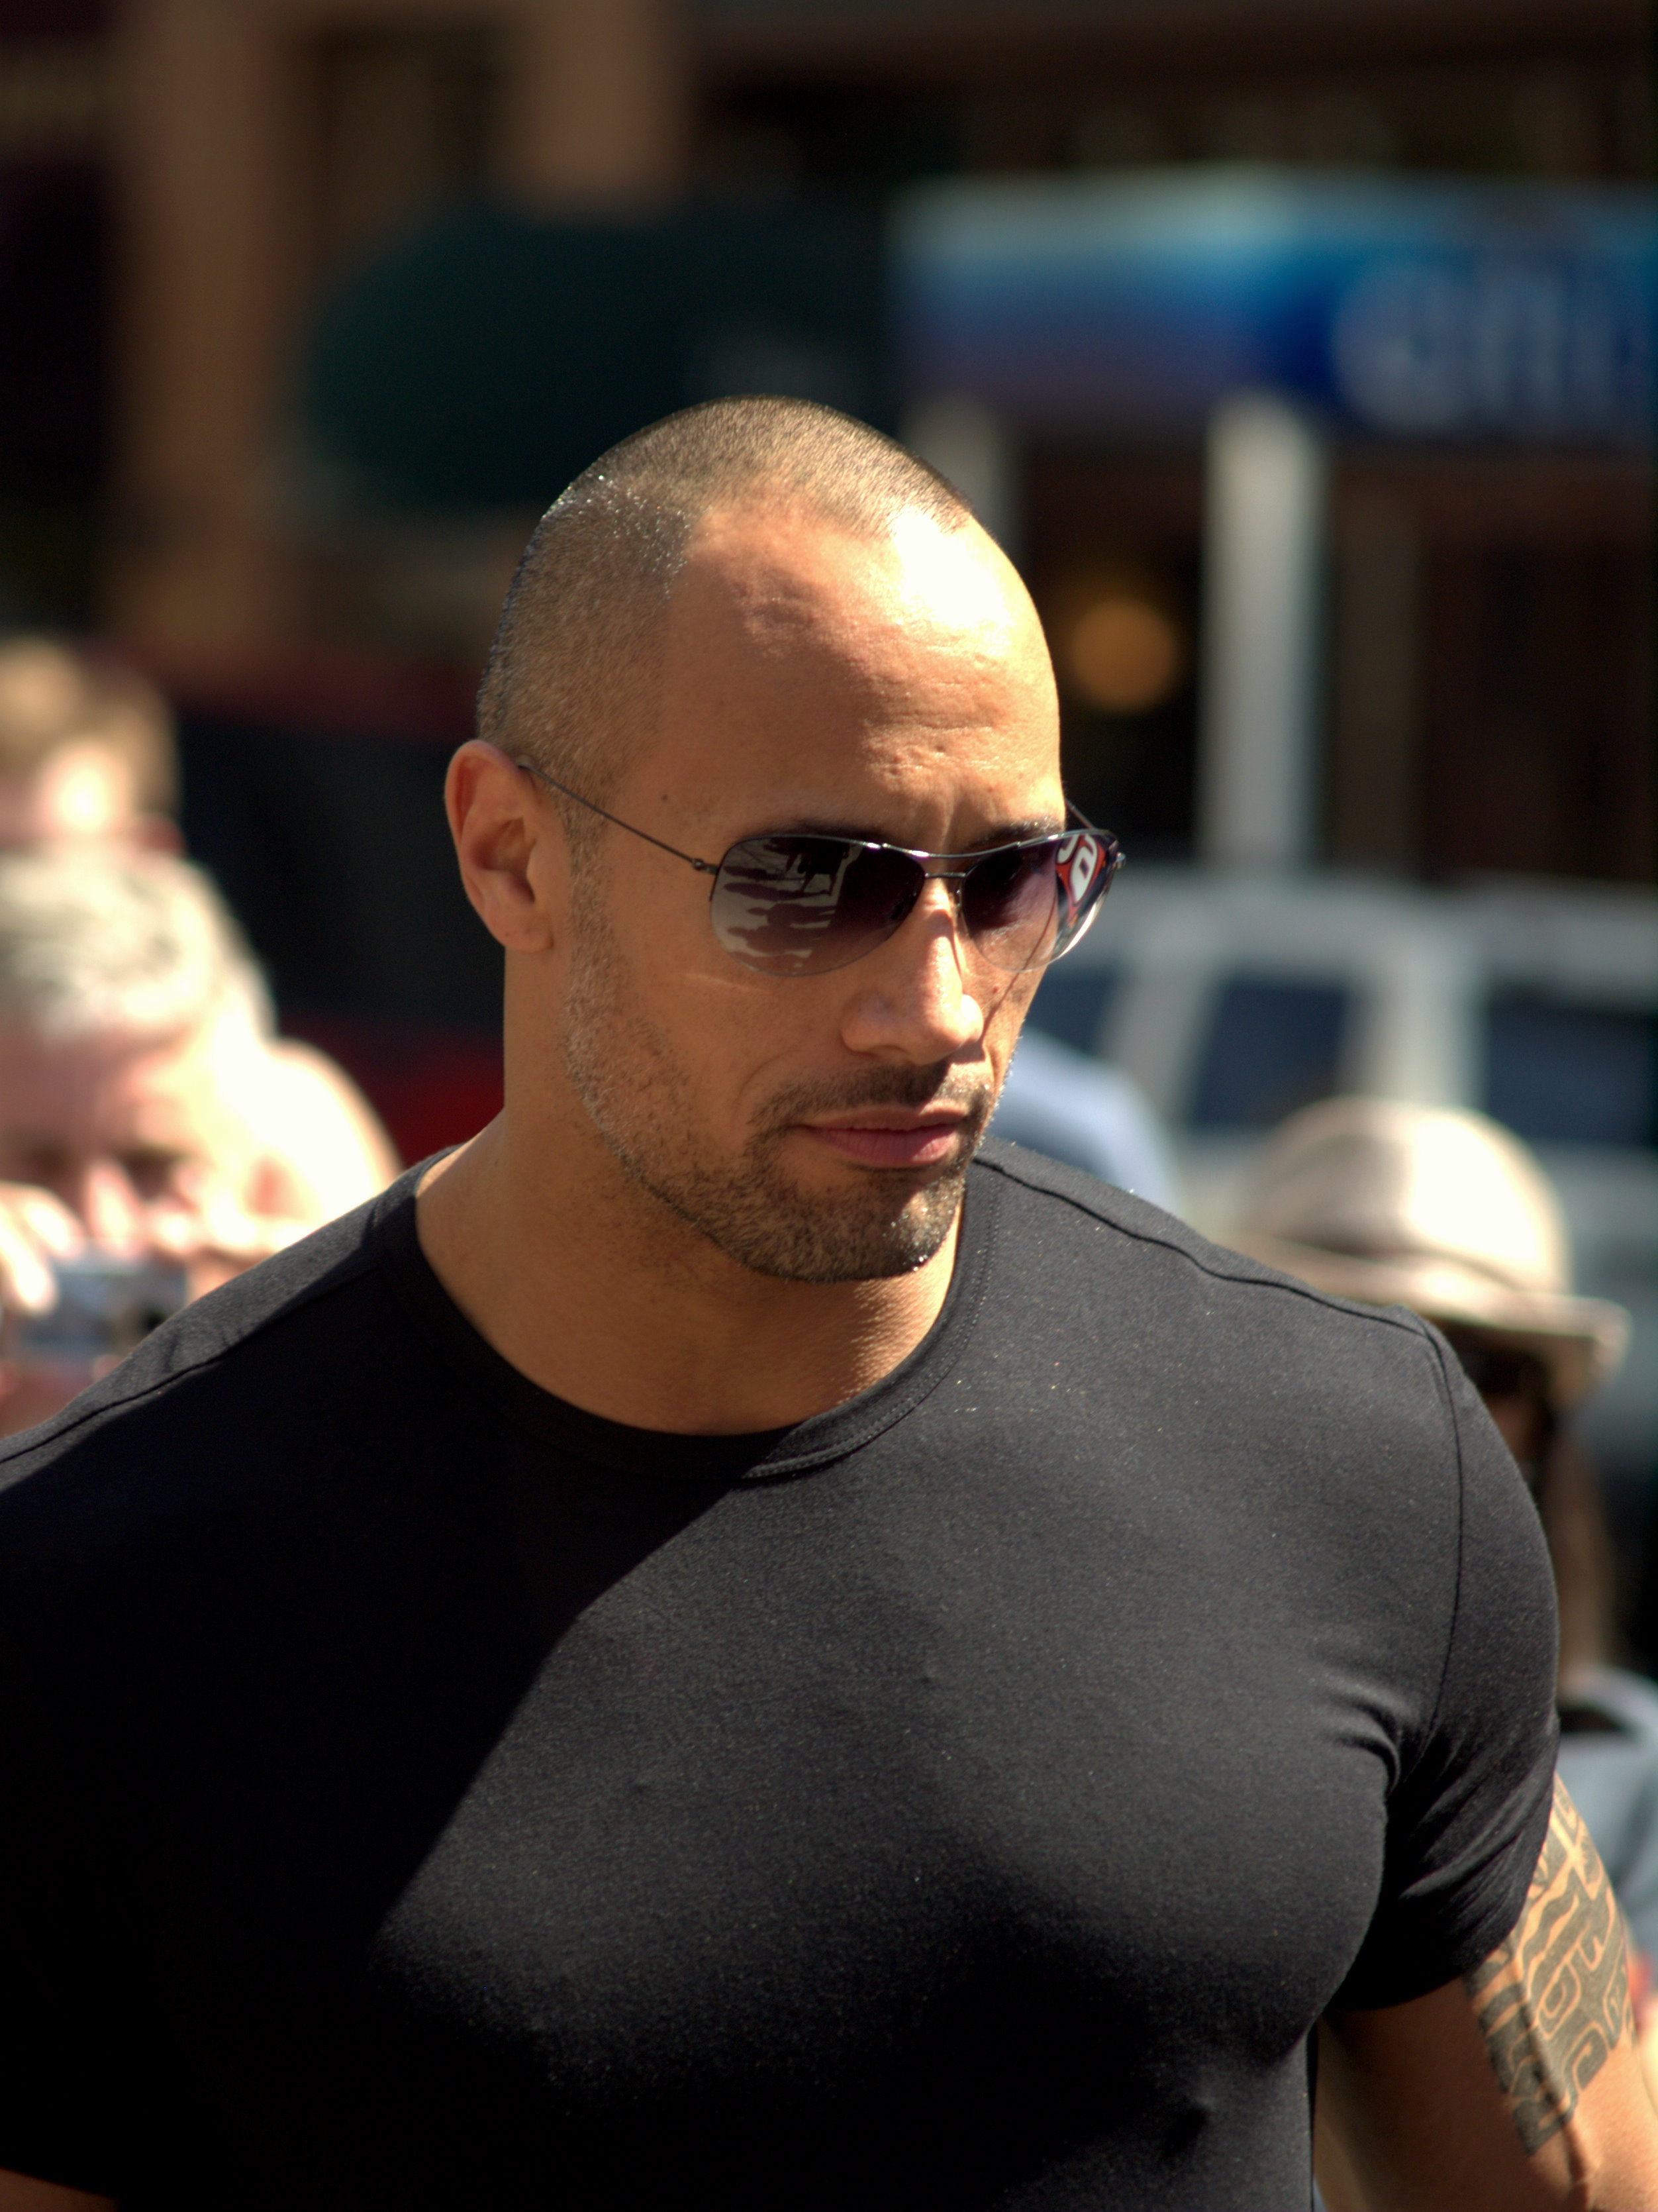 Description Dwayne Johnson at the 2009 Tribeca Film Festival 2.jpg